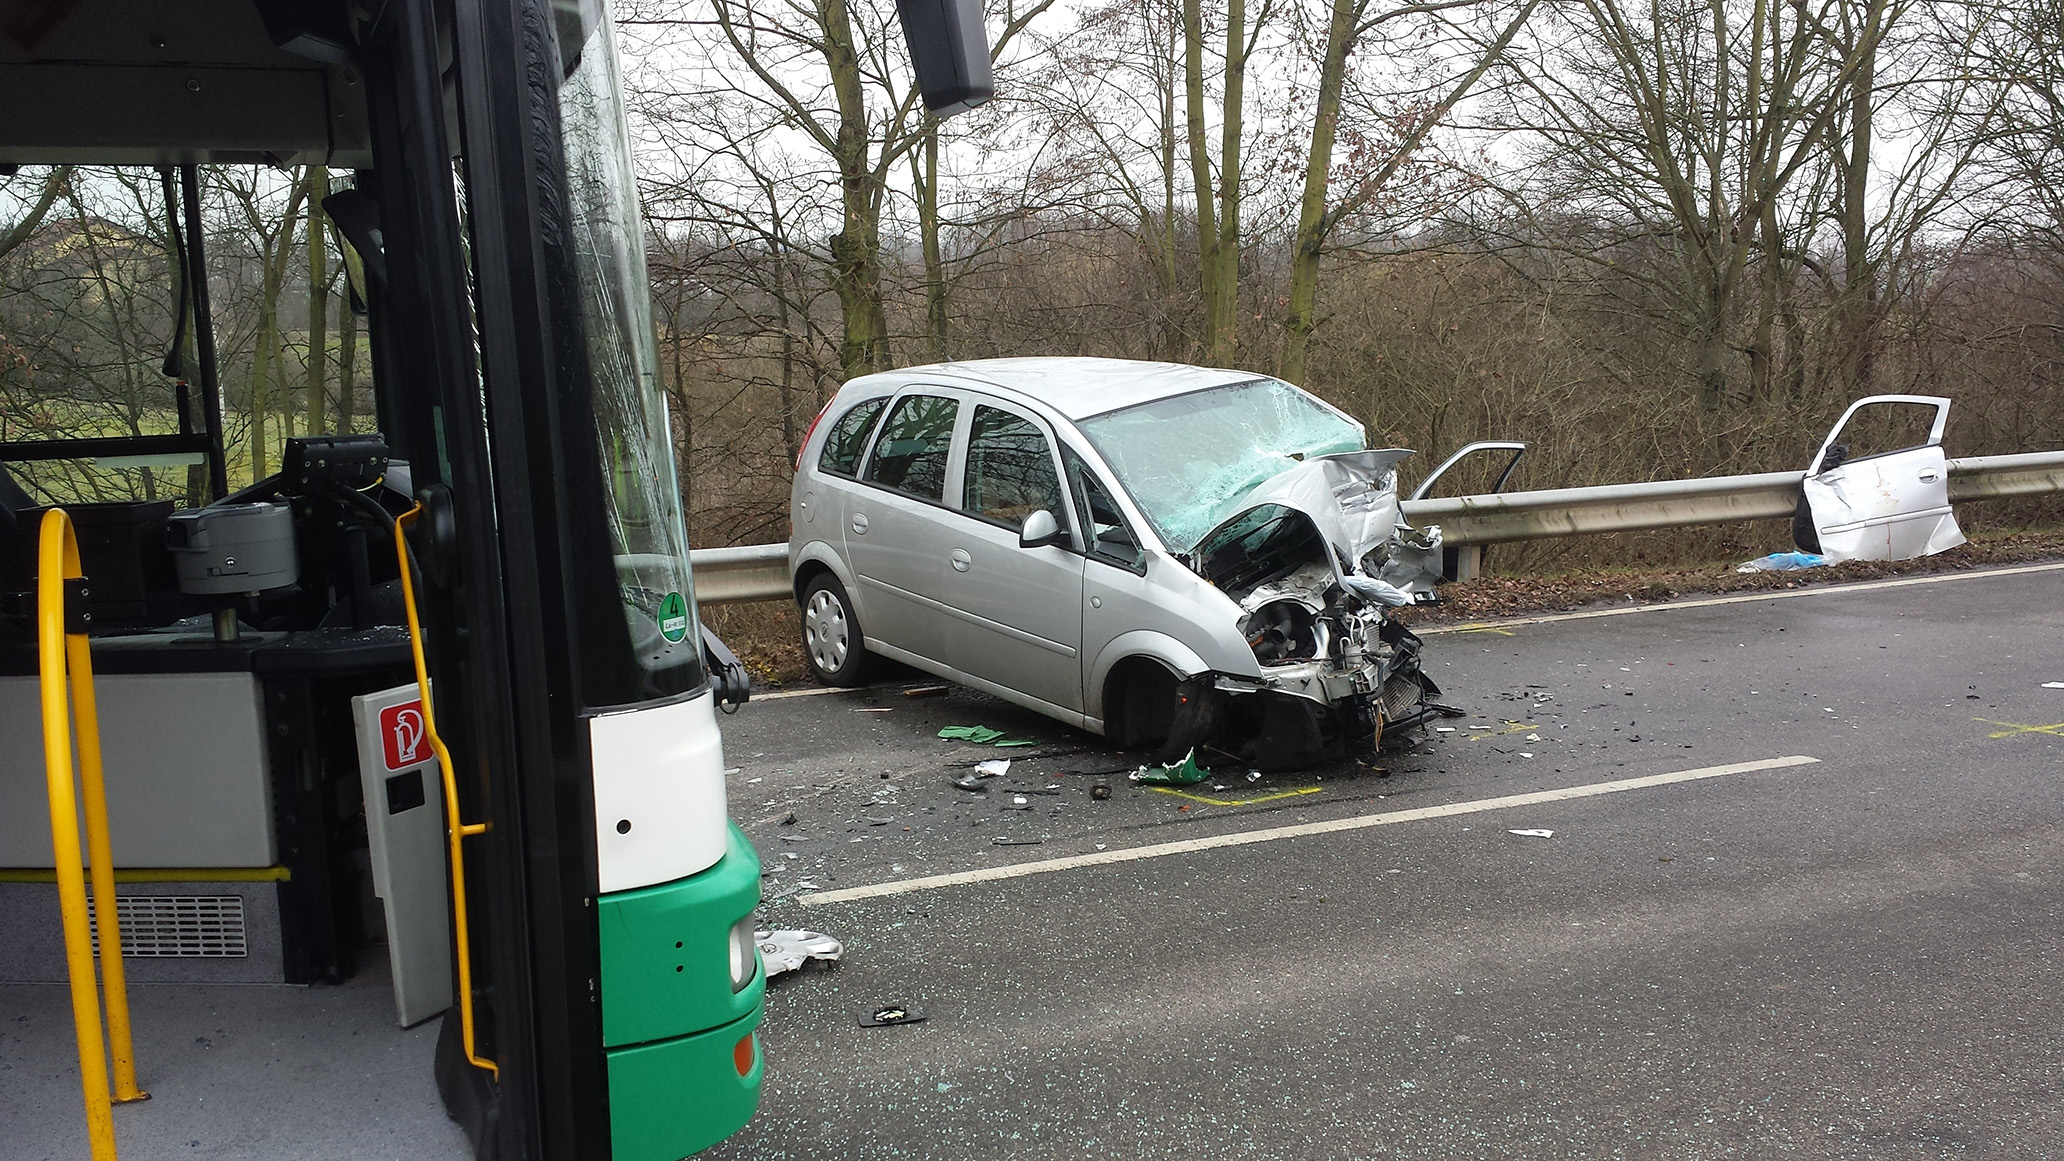 Bus Public Transport Vehicle Collision, Road Traffic Accident, Whiplash, Injury Compensation